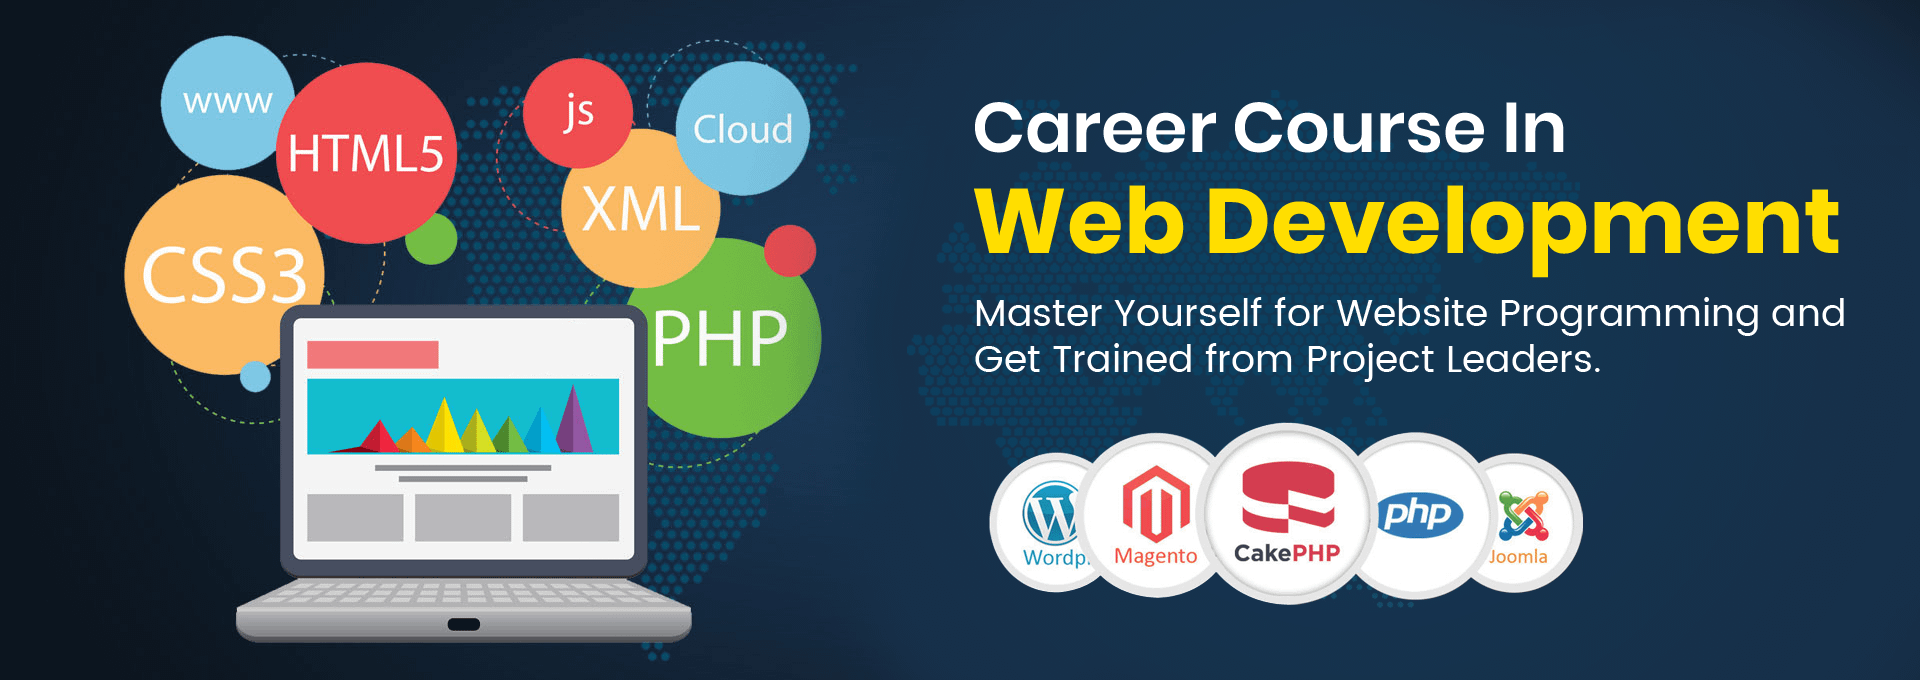 web-development-training-coaching-institute-in-jaipur